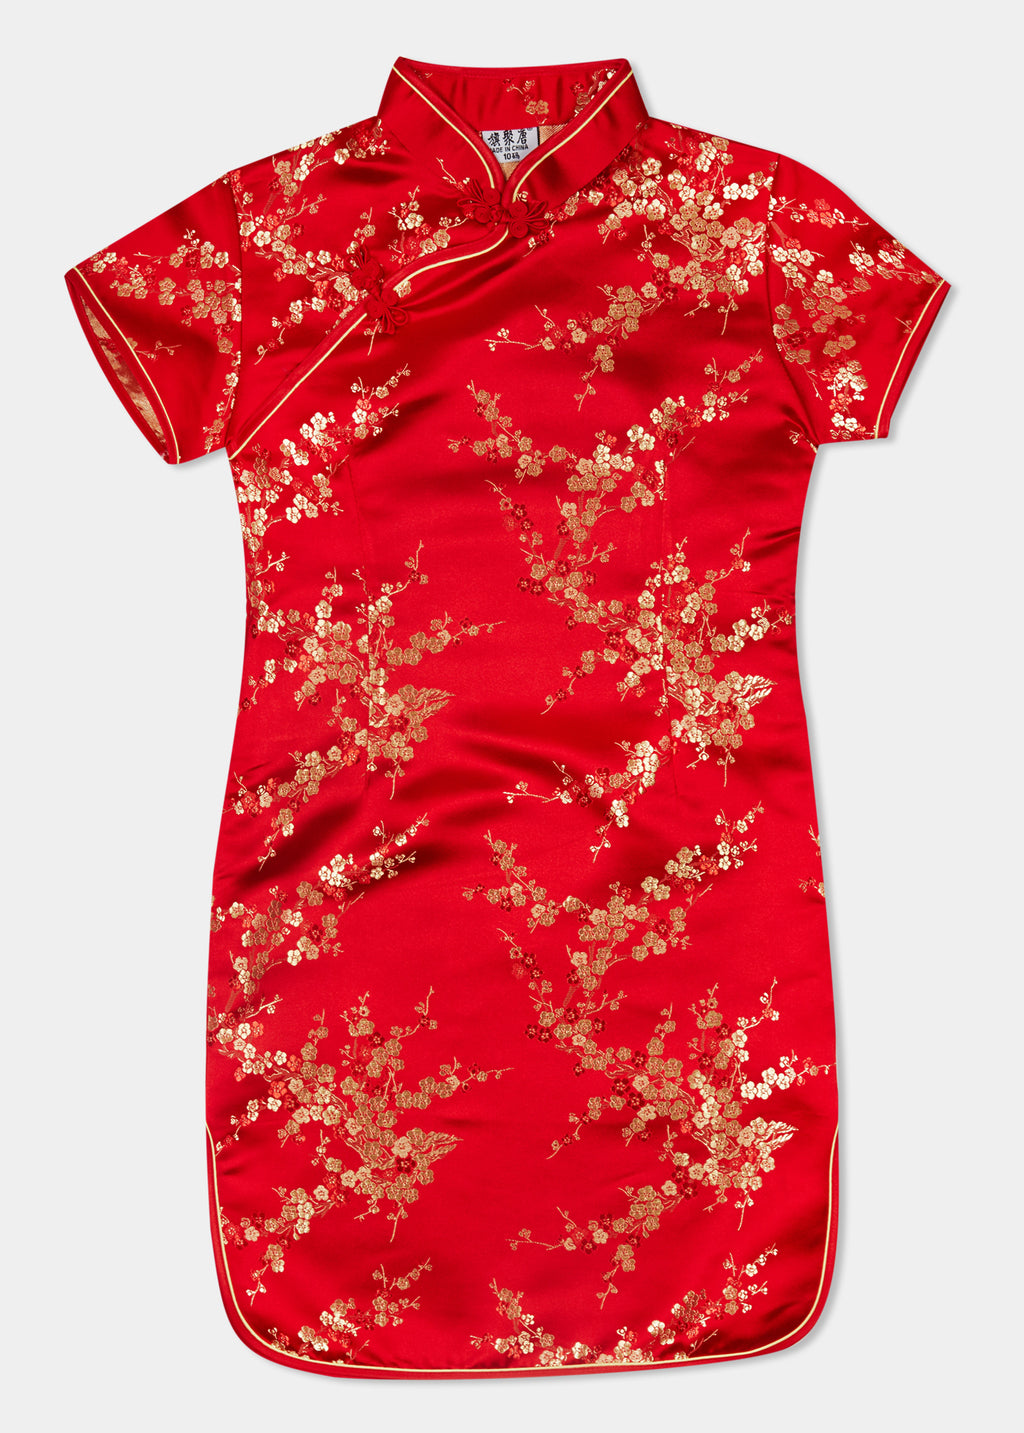 The Cheongsam or Qipao, is a dress with distinctive Chinese features of mandarin collar, side splits and hand stitched flower and knot frog fastenings. Manufactured in authentic high quality silk/rayon brocade in a stunning red cherry blossom design - a symbol of beauty and love. The perfect way to dress up or party